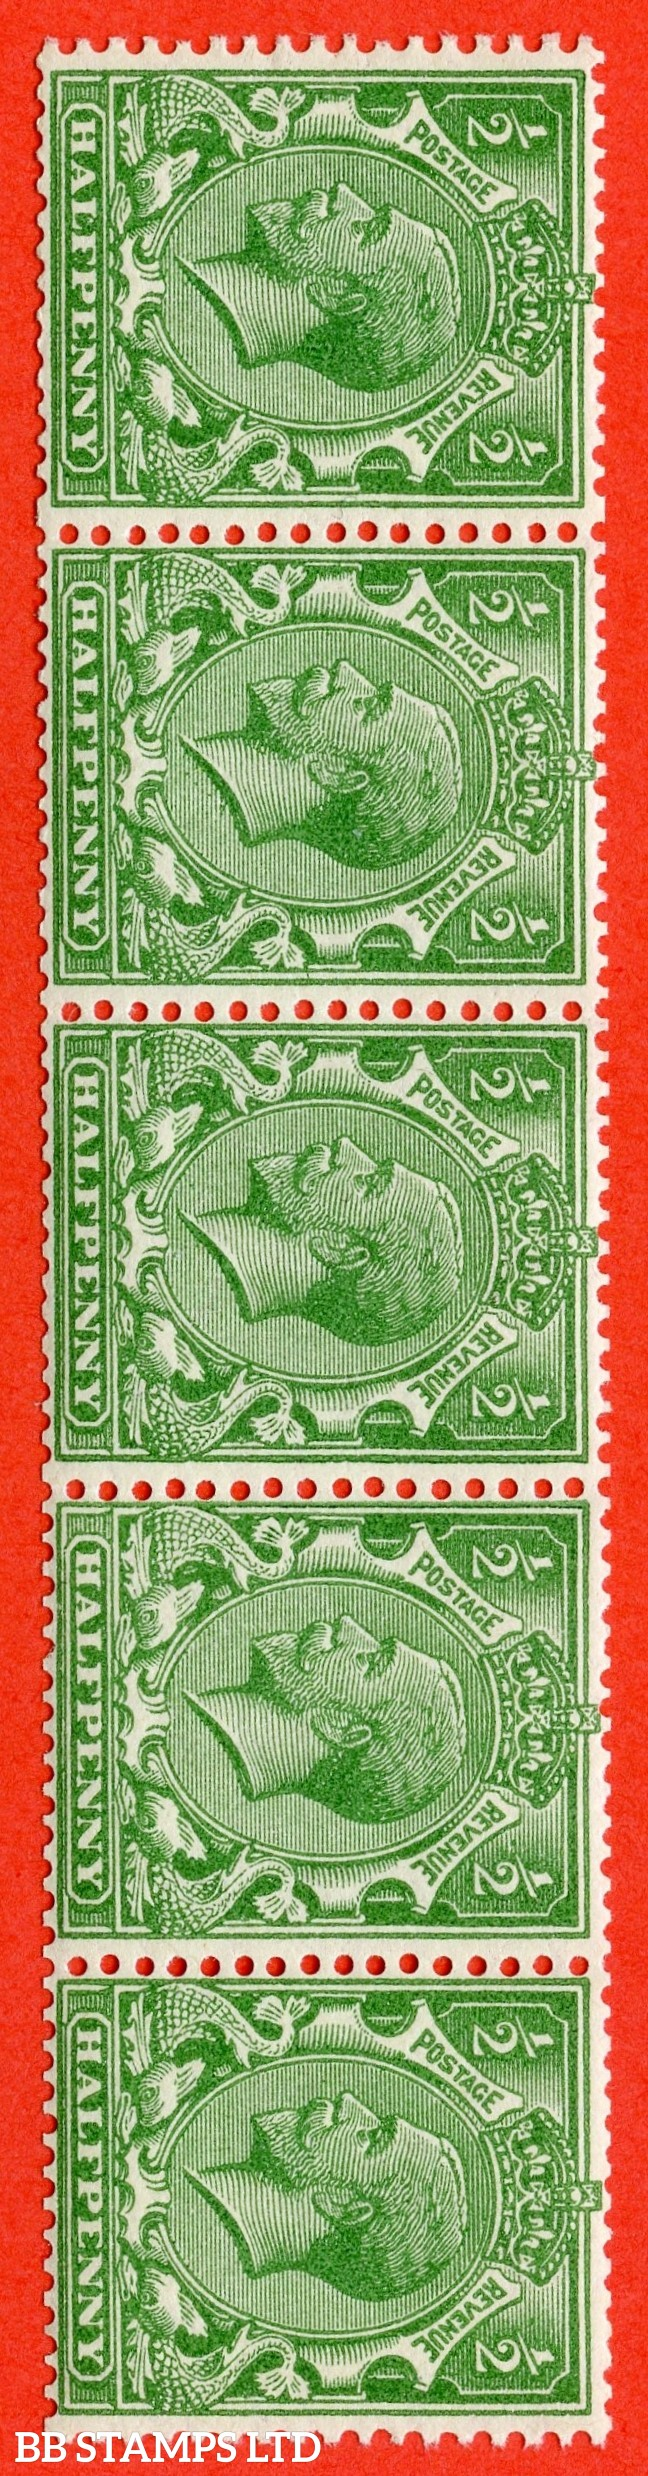 SG. 418 awi. N33 (1) c. ½d green. SIDEWAYS & INVERTED WATERMARK. A superb UNMOUNTED MINT horizontal strip of 5 of this very RARE George V watermark variety.